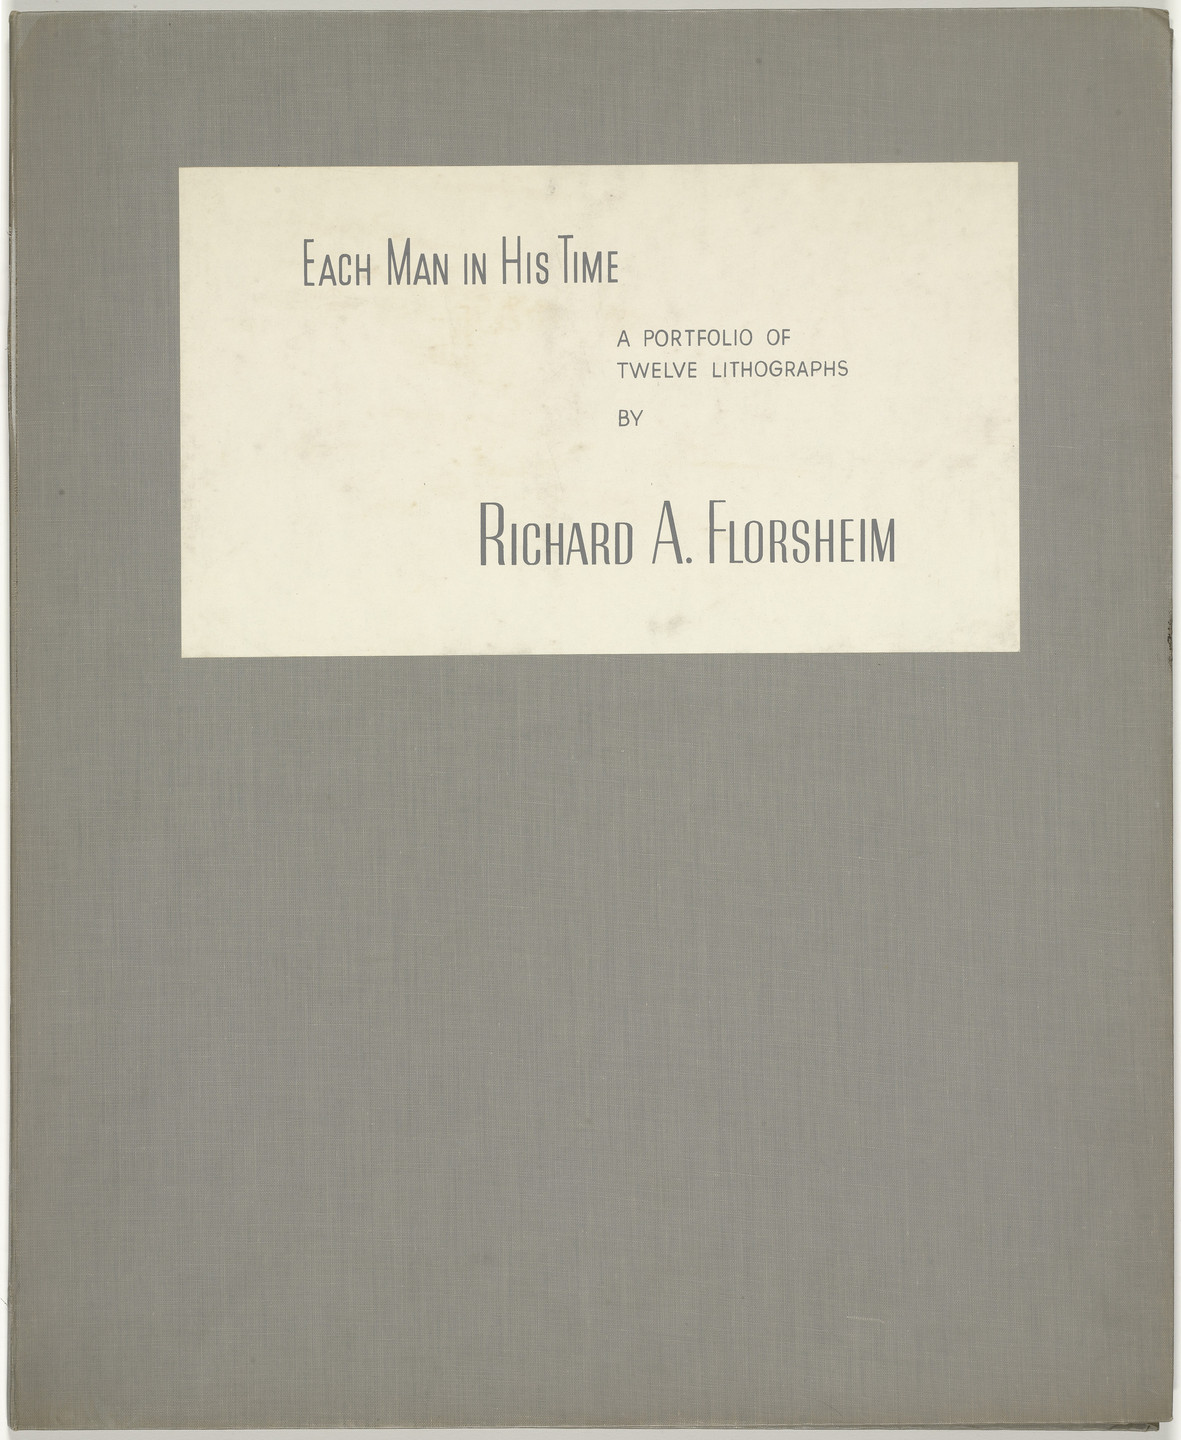 Richard A. Florsheim. Each Man in His Time. 1951